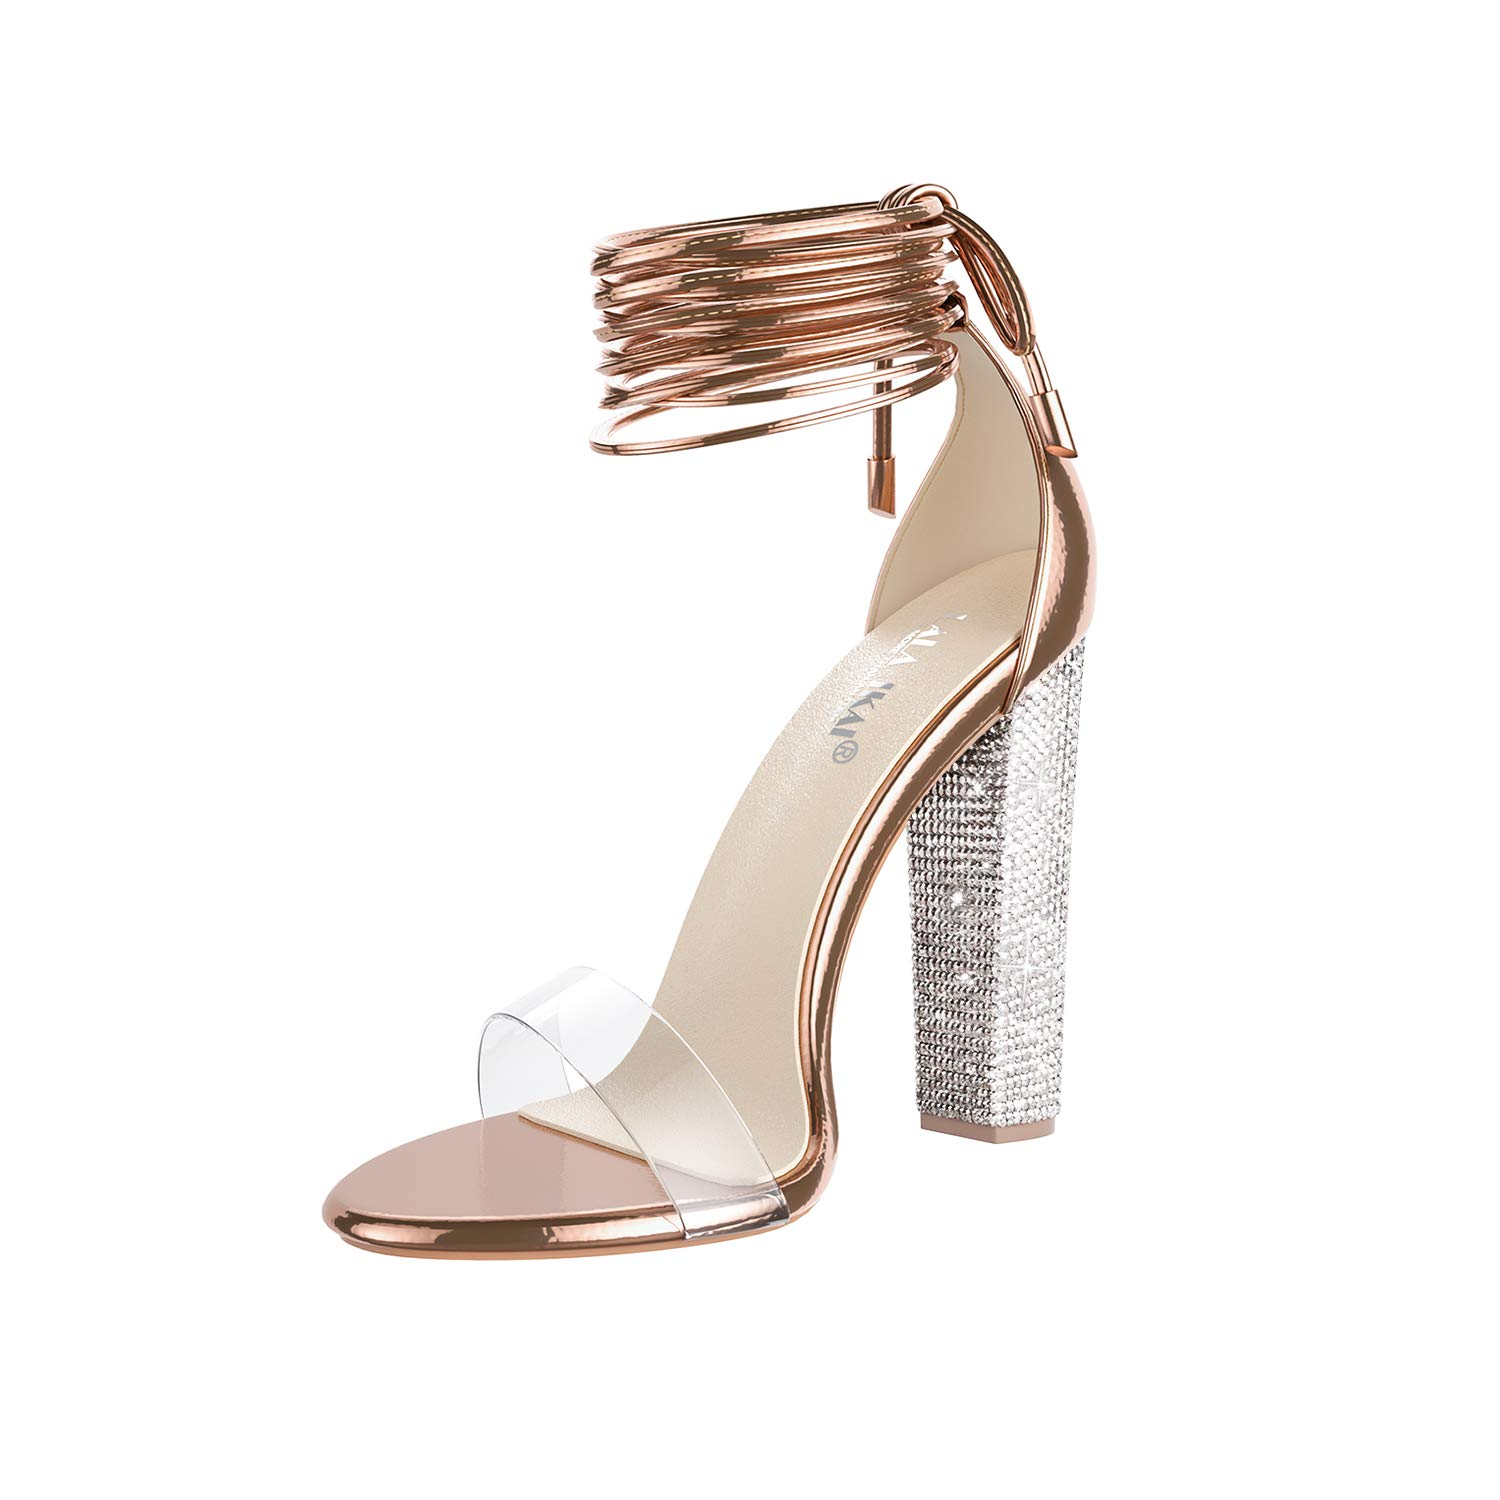 LALA IKAI Women's Gold High Heels Sandals with Rhinestone Ankle Strappy Clear Chunky Heels Dress Party Pumps Shoes B07DYLP6BQ_uk